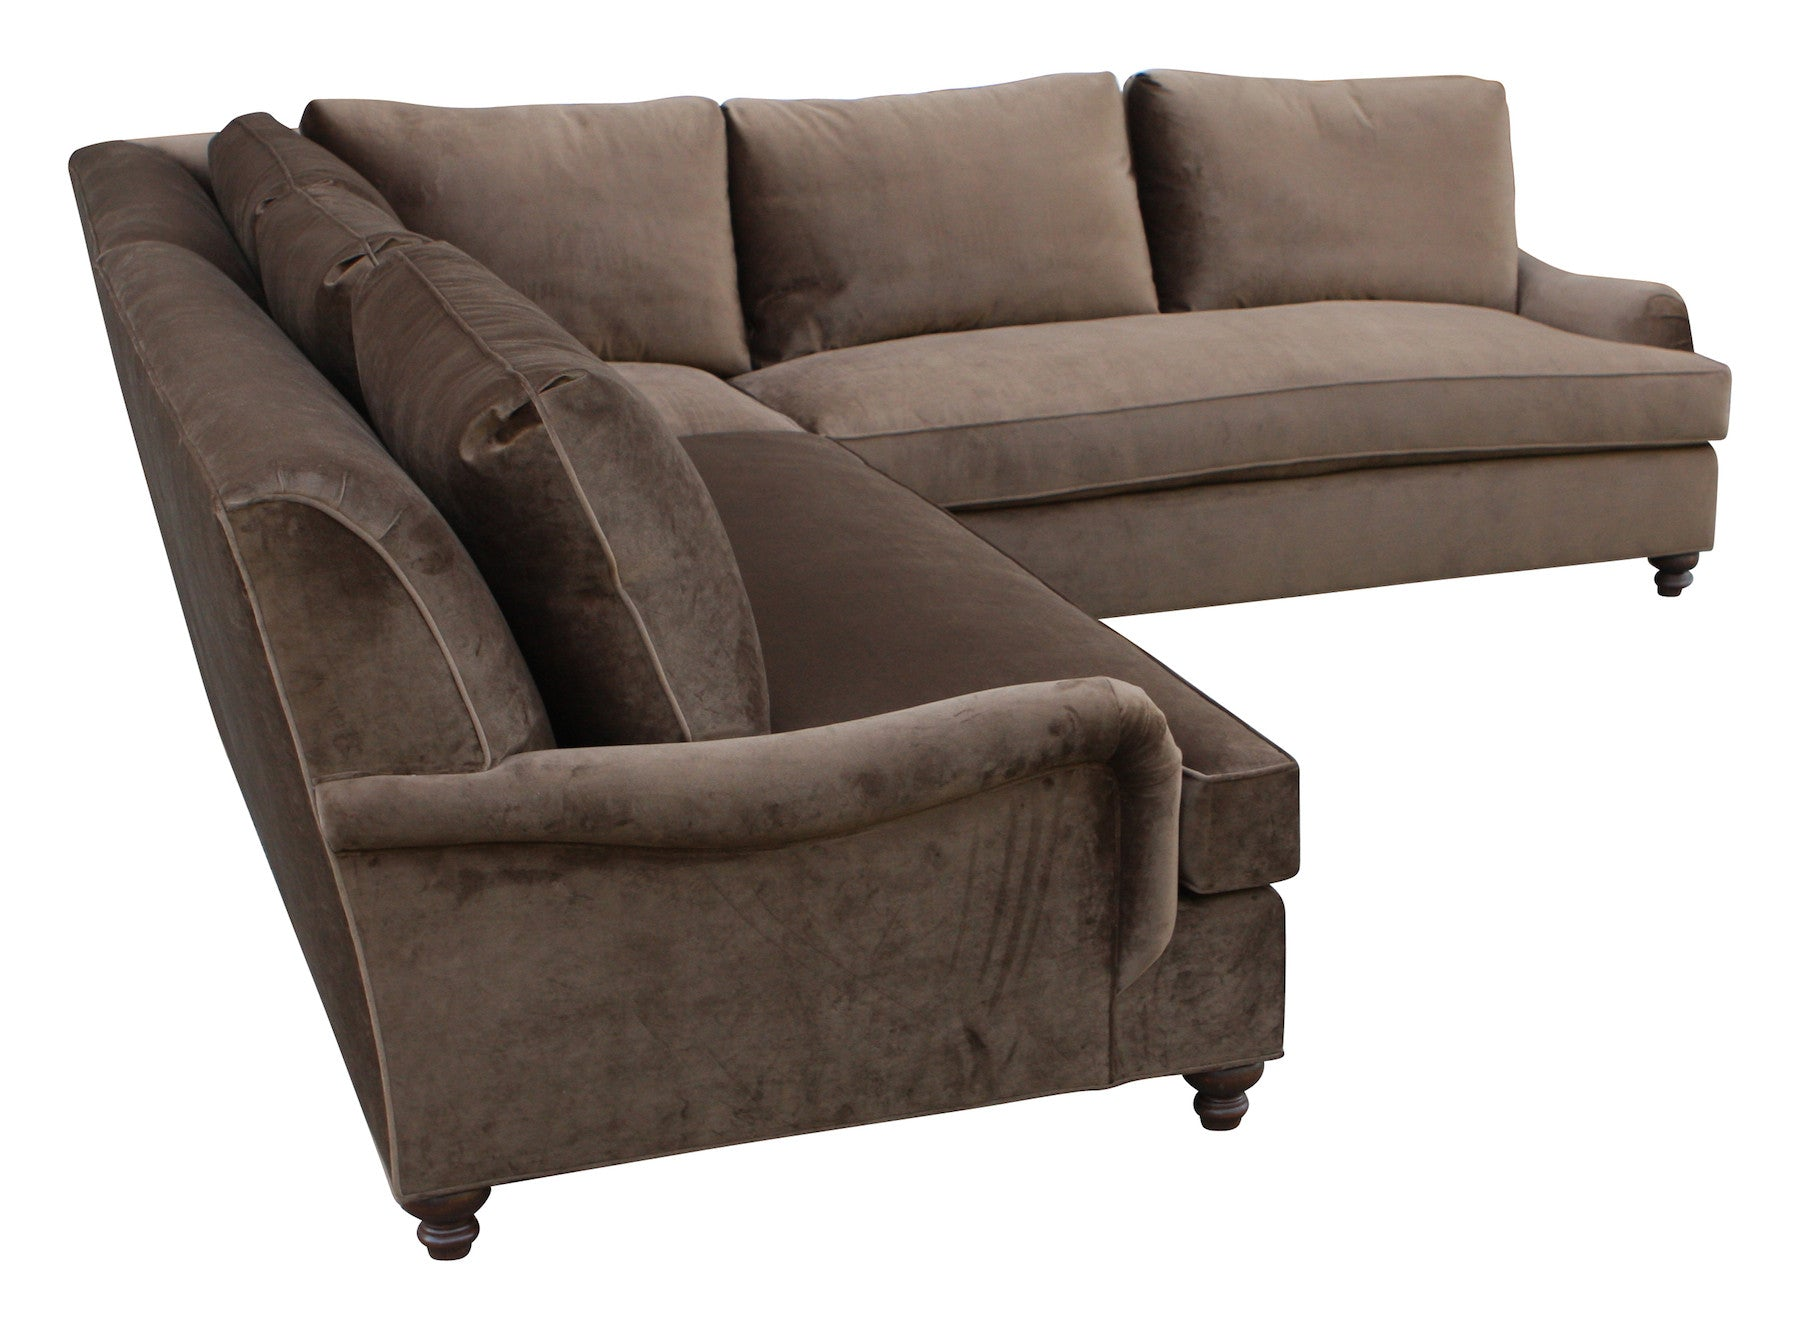 English Rolled Arm Sectional and Sofas Custom Made in Our Los